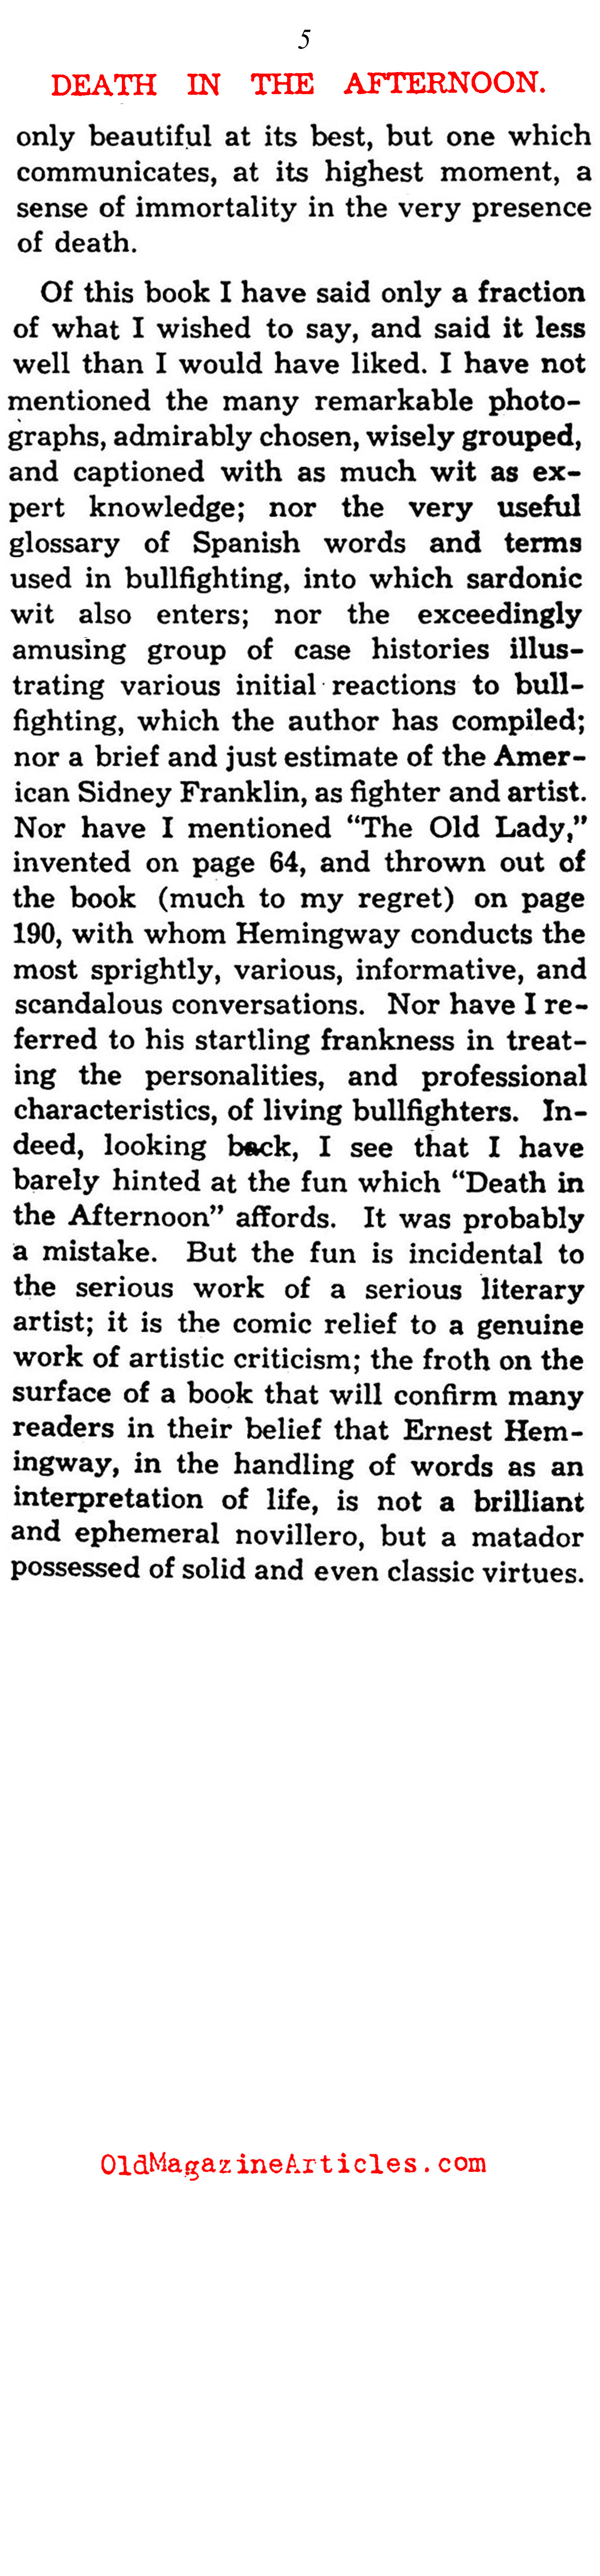 Hemingway's 'Death in the Afternoon' (Saturday Review of Literature, 1932)